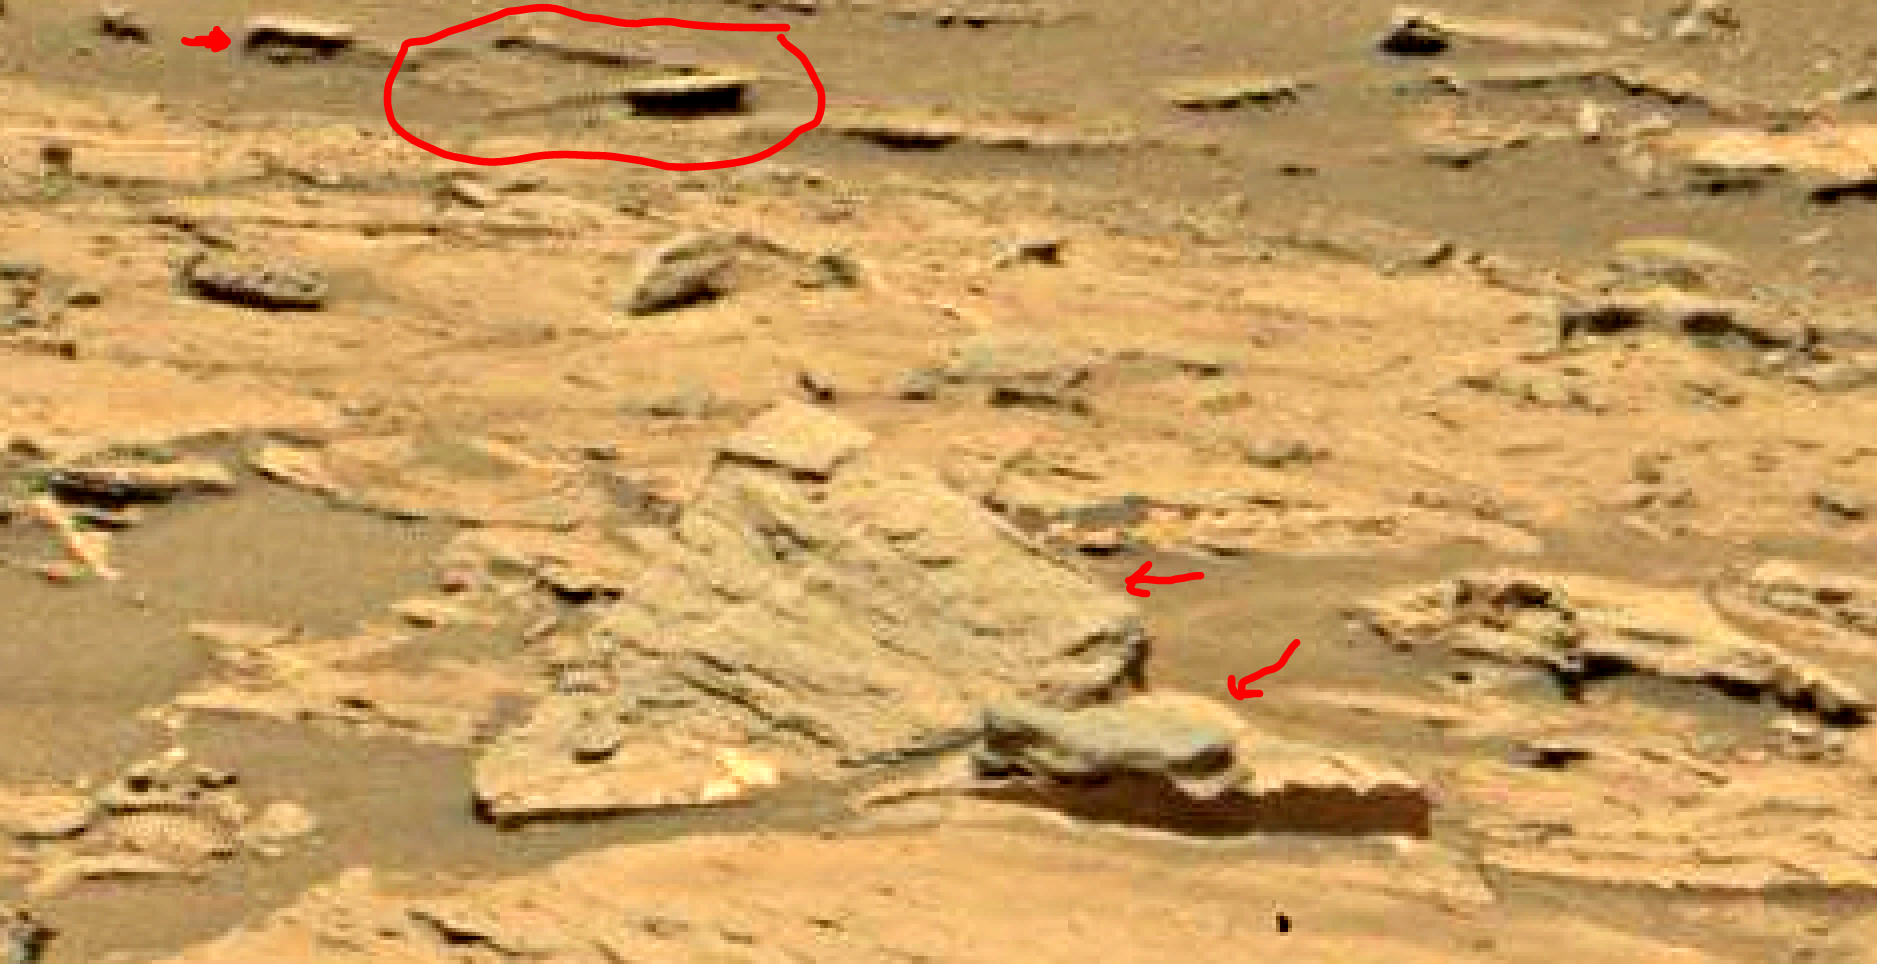 mars sol 1353 anomaly-artifacts 2a was life on mars